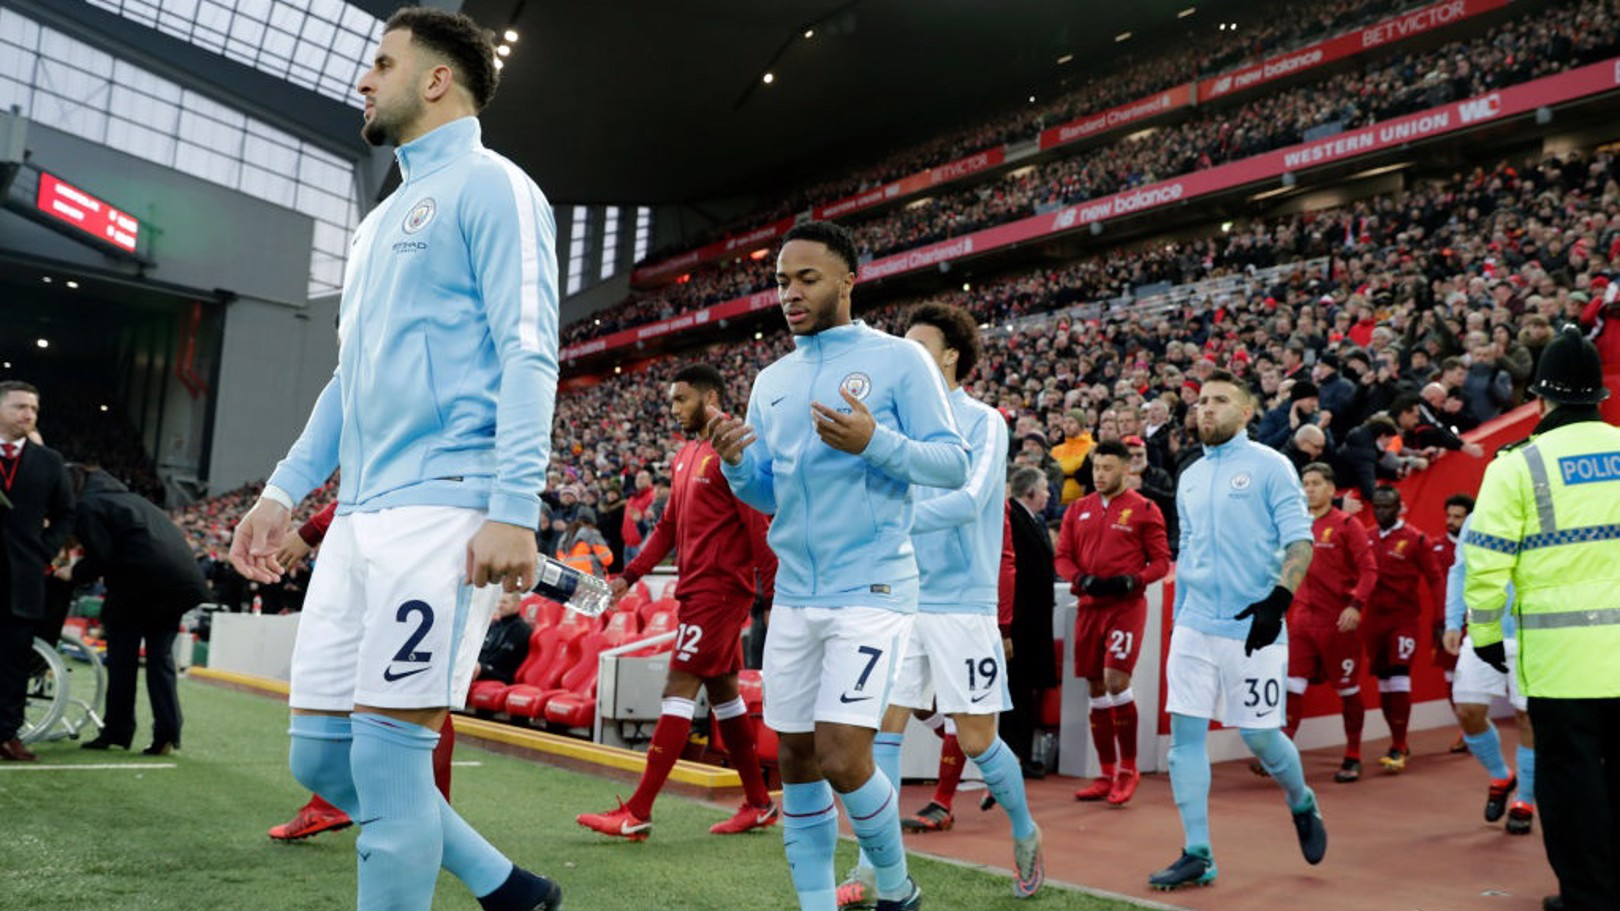 RETURN: Raheem Sterling back at Anfield after leaving for City in 2015.